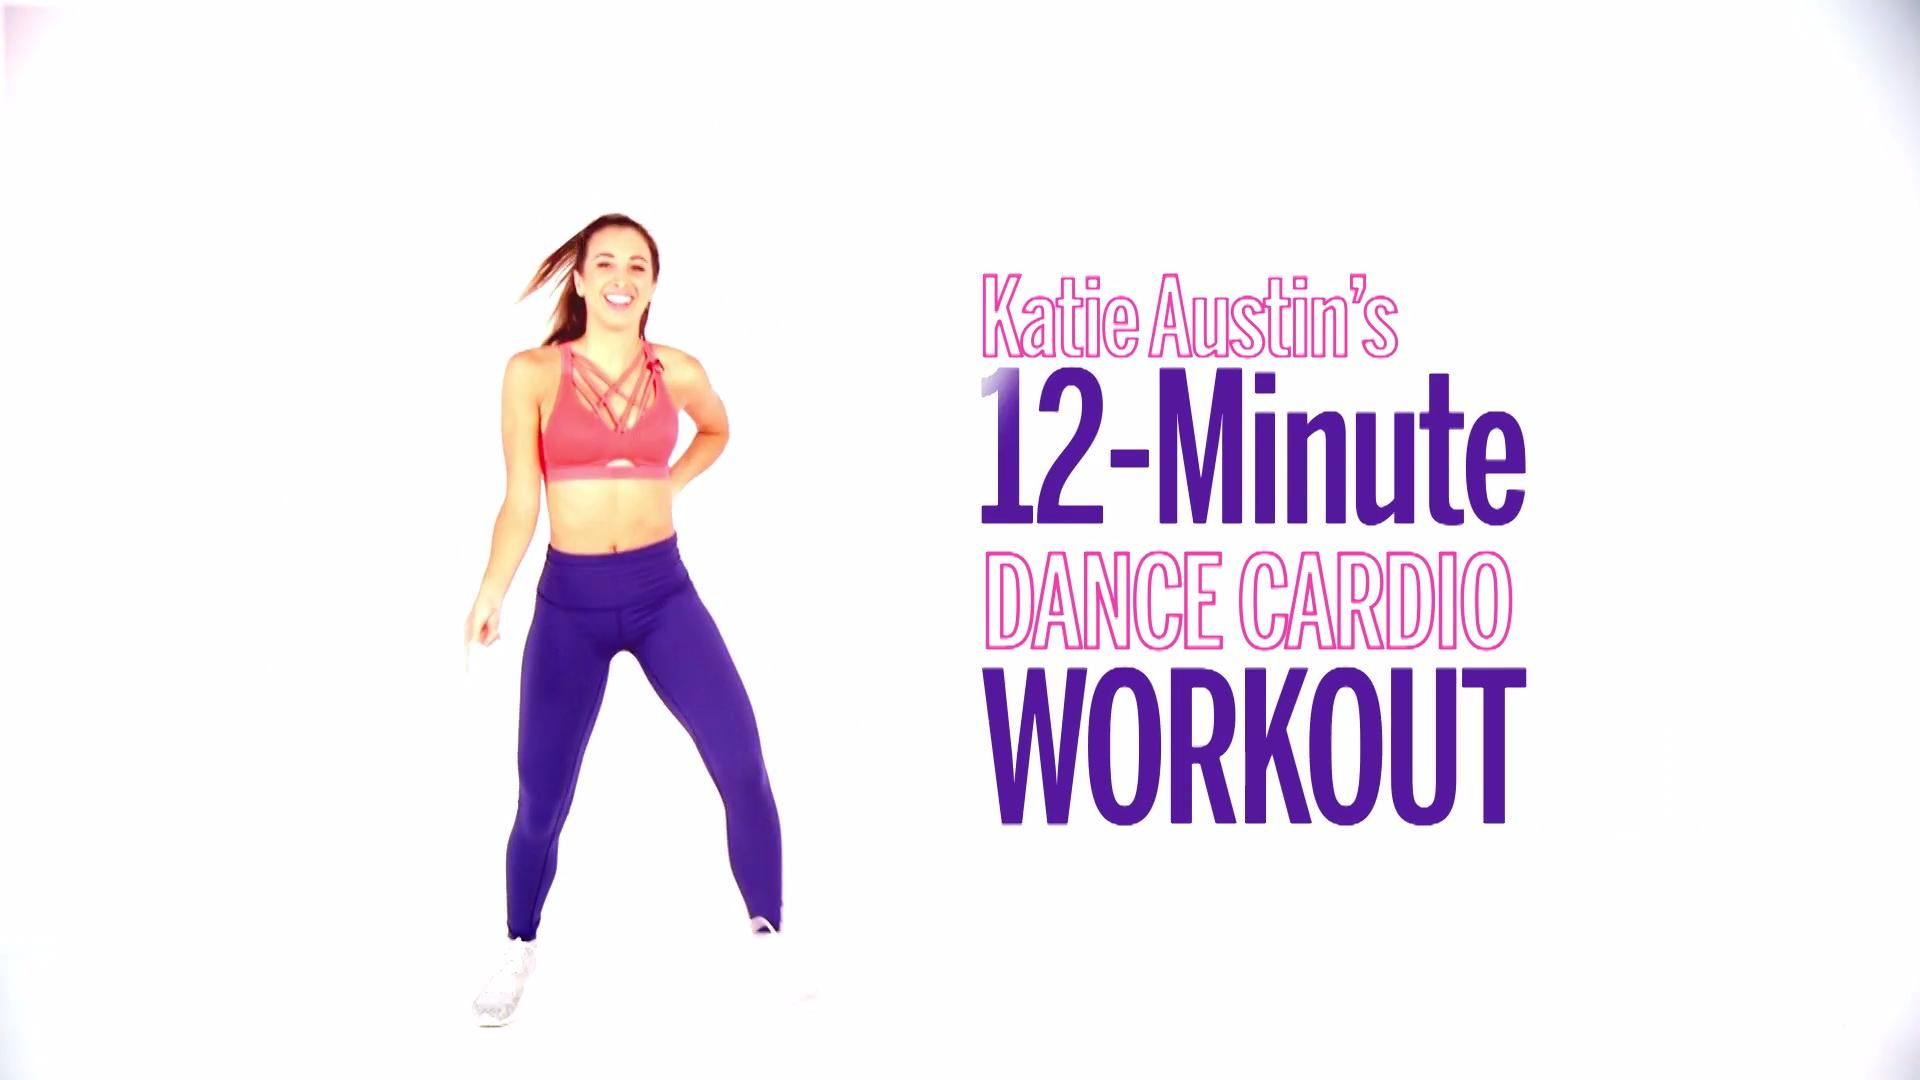 Katie Austin's Dance Cardio Workout